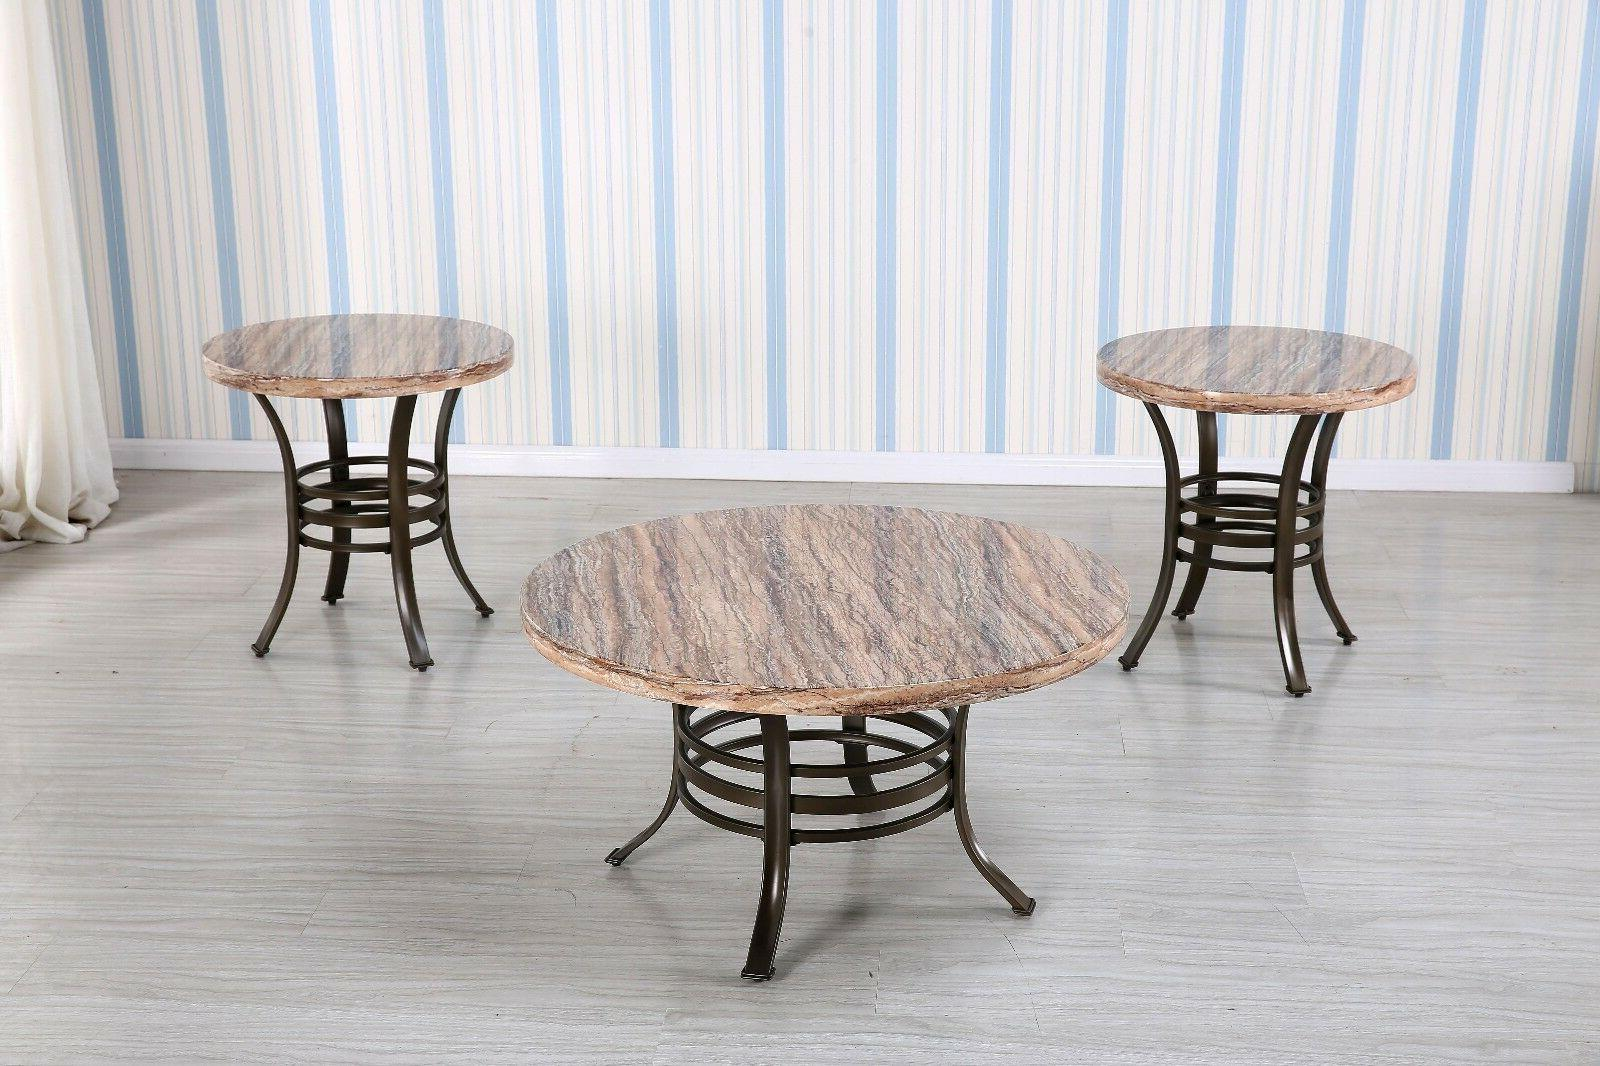 3-PC Round Faux Marble Top Coffee Table and End Table Set wi